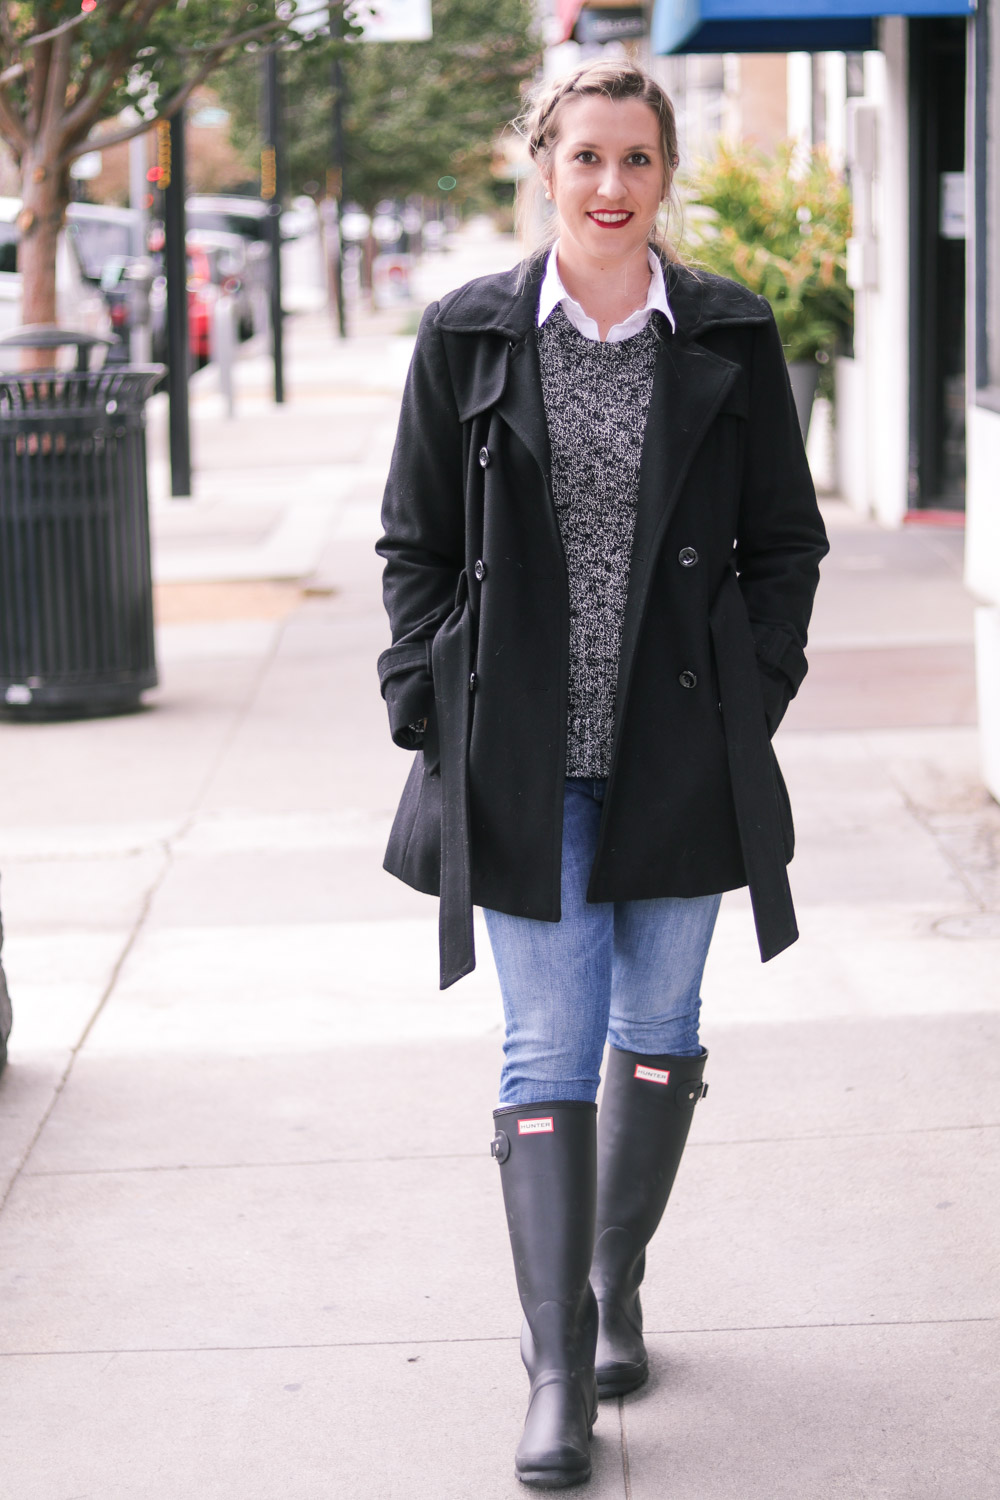 Fall Style Staples | Catherine Chicotka